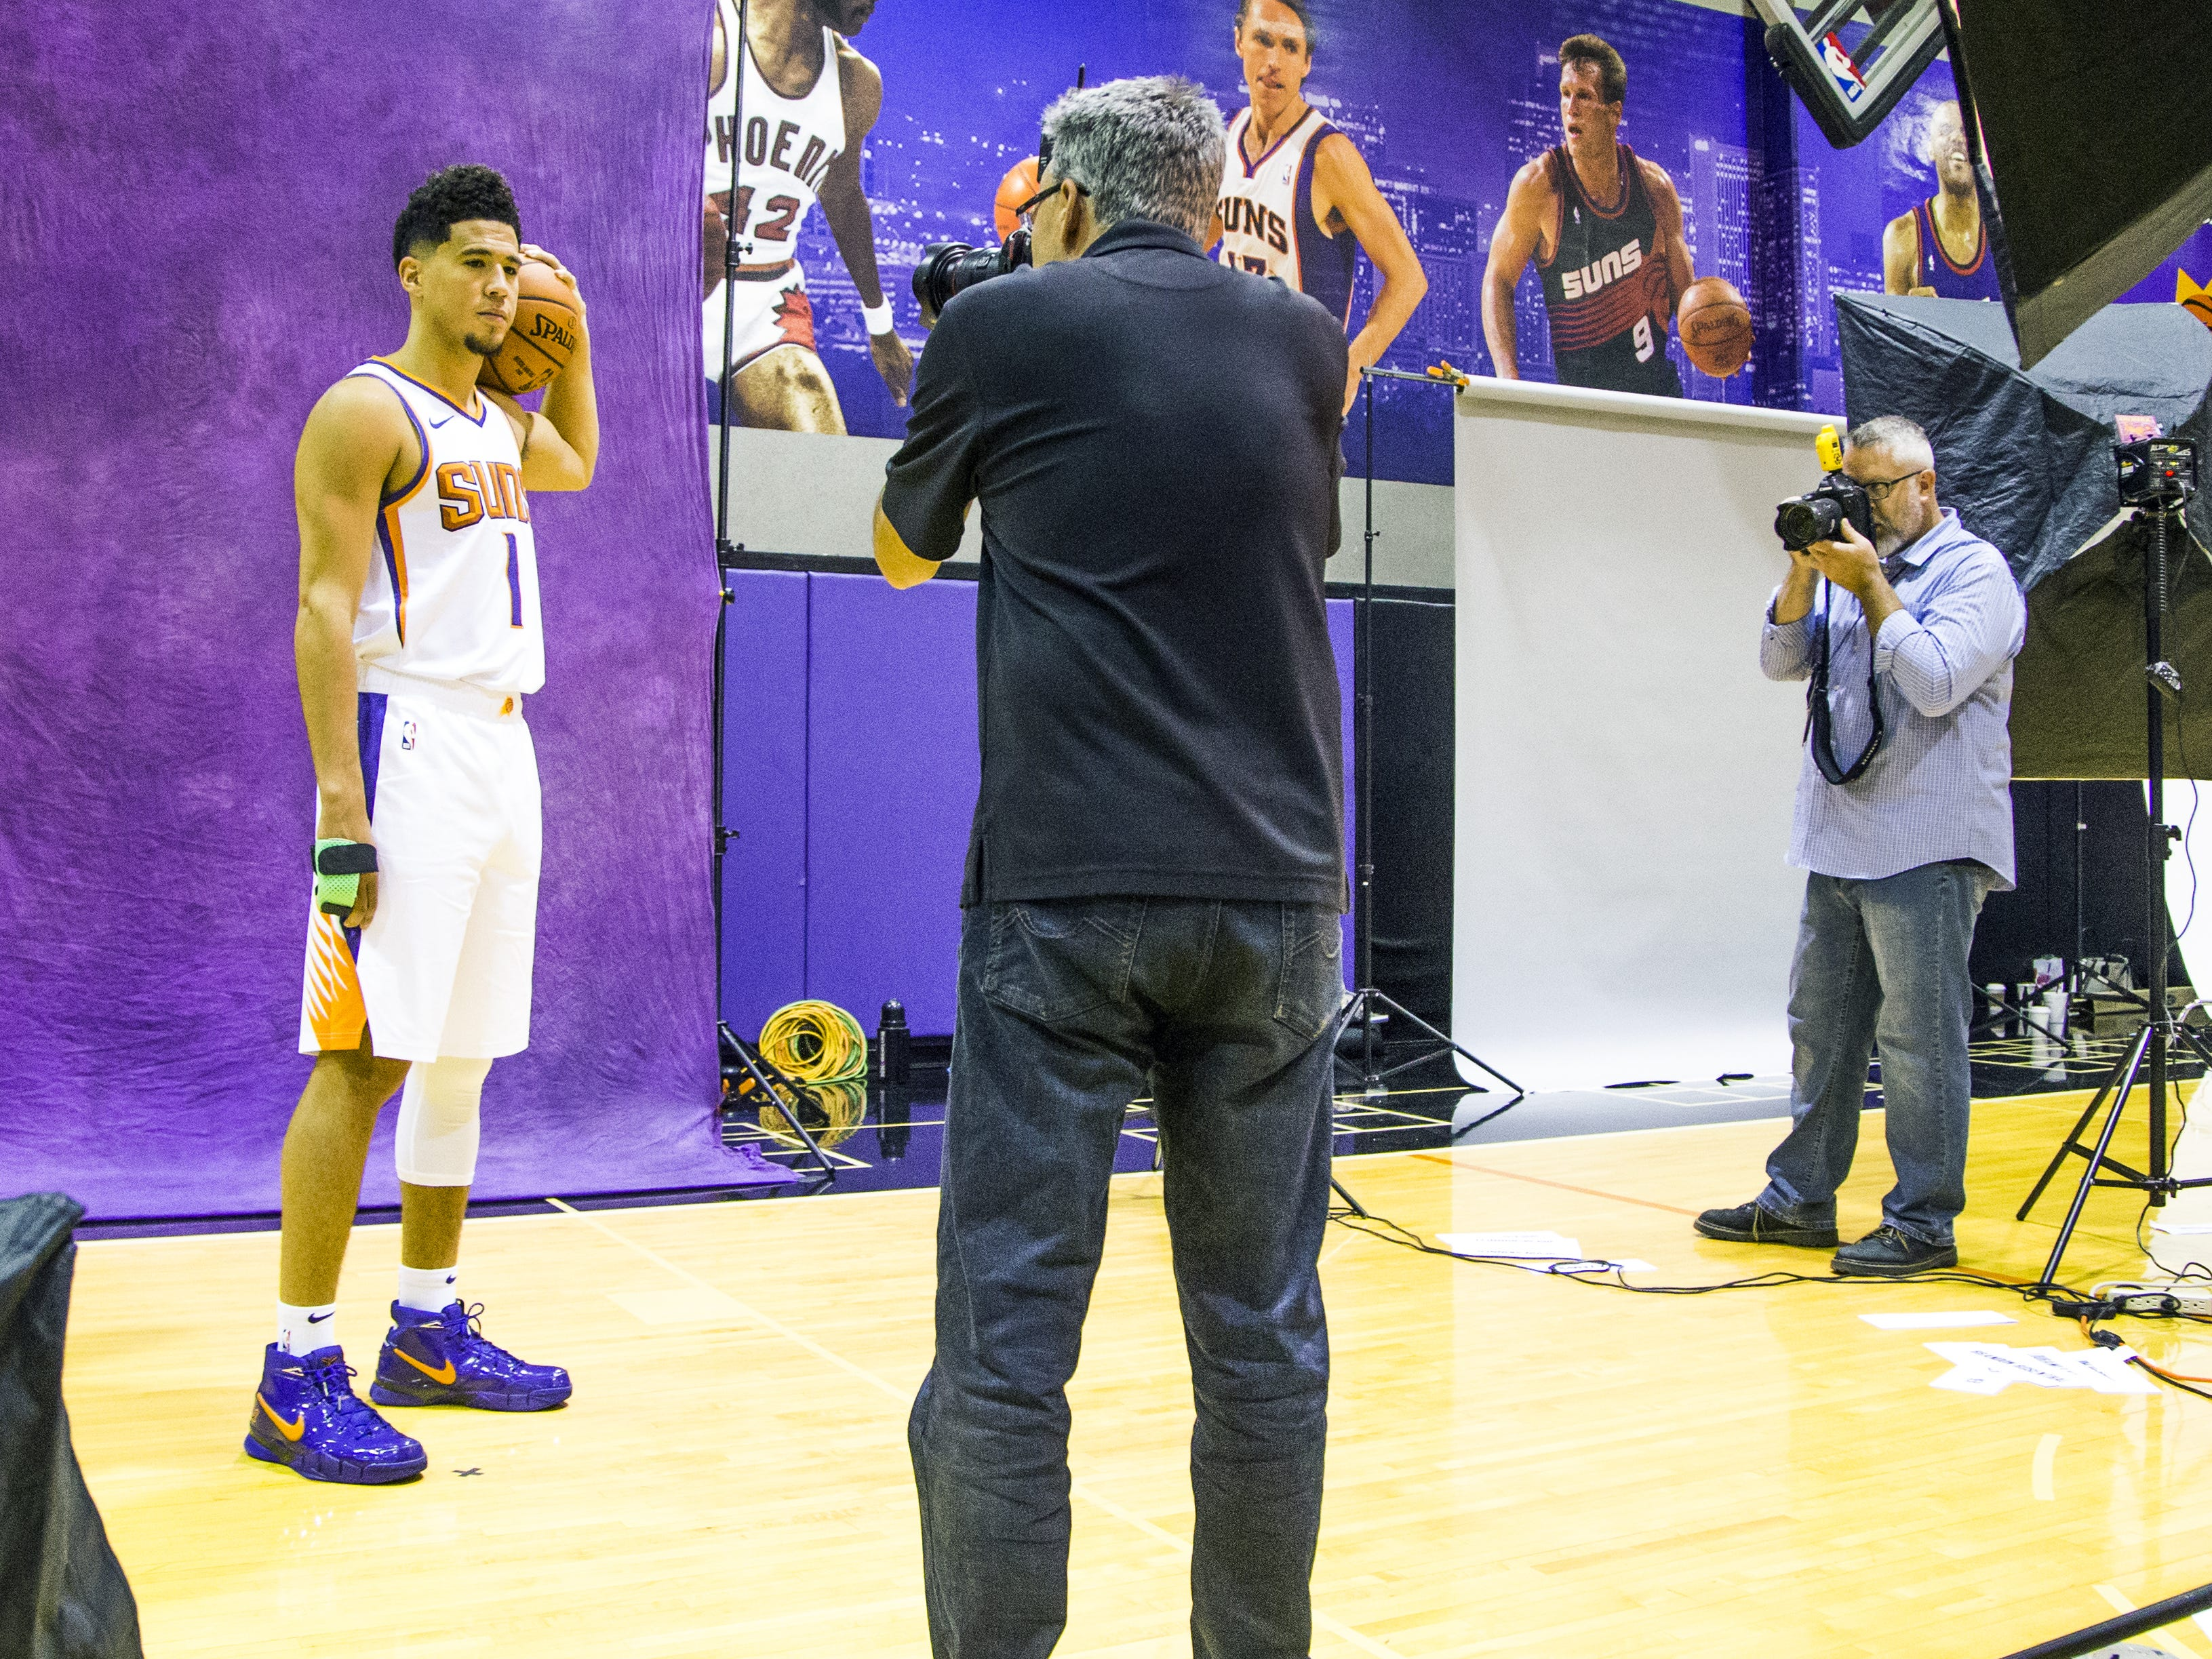 Arizona Republic photographer Rob Schumacher, left, and Associated Press photographer Matt York, right, take photos of Phoenix Suns guard Devin Booker at Phoenix Suns Media Day at Talking Stick Resort Arena in Phoenix, Monday, September 24, 2018.